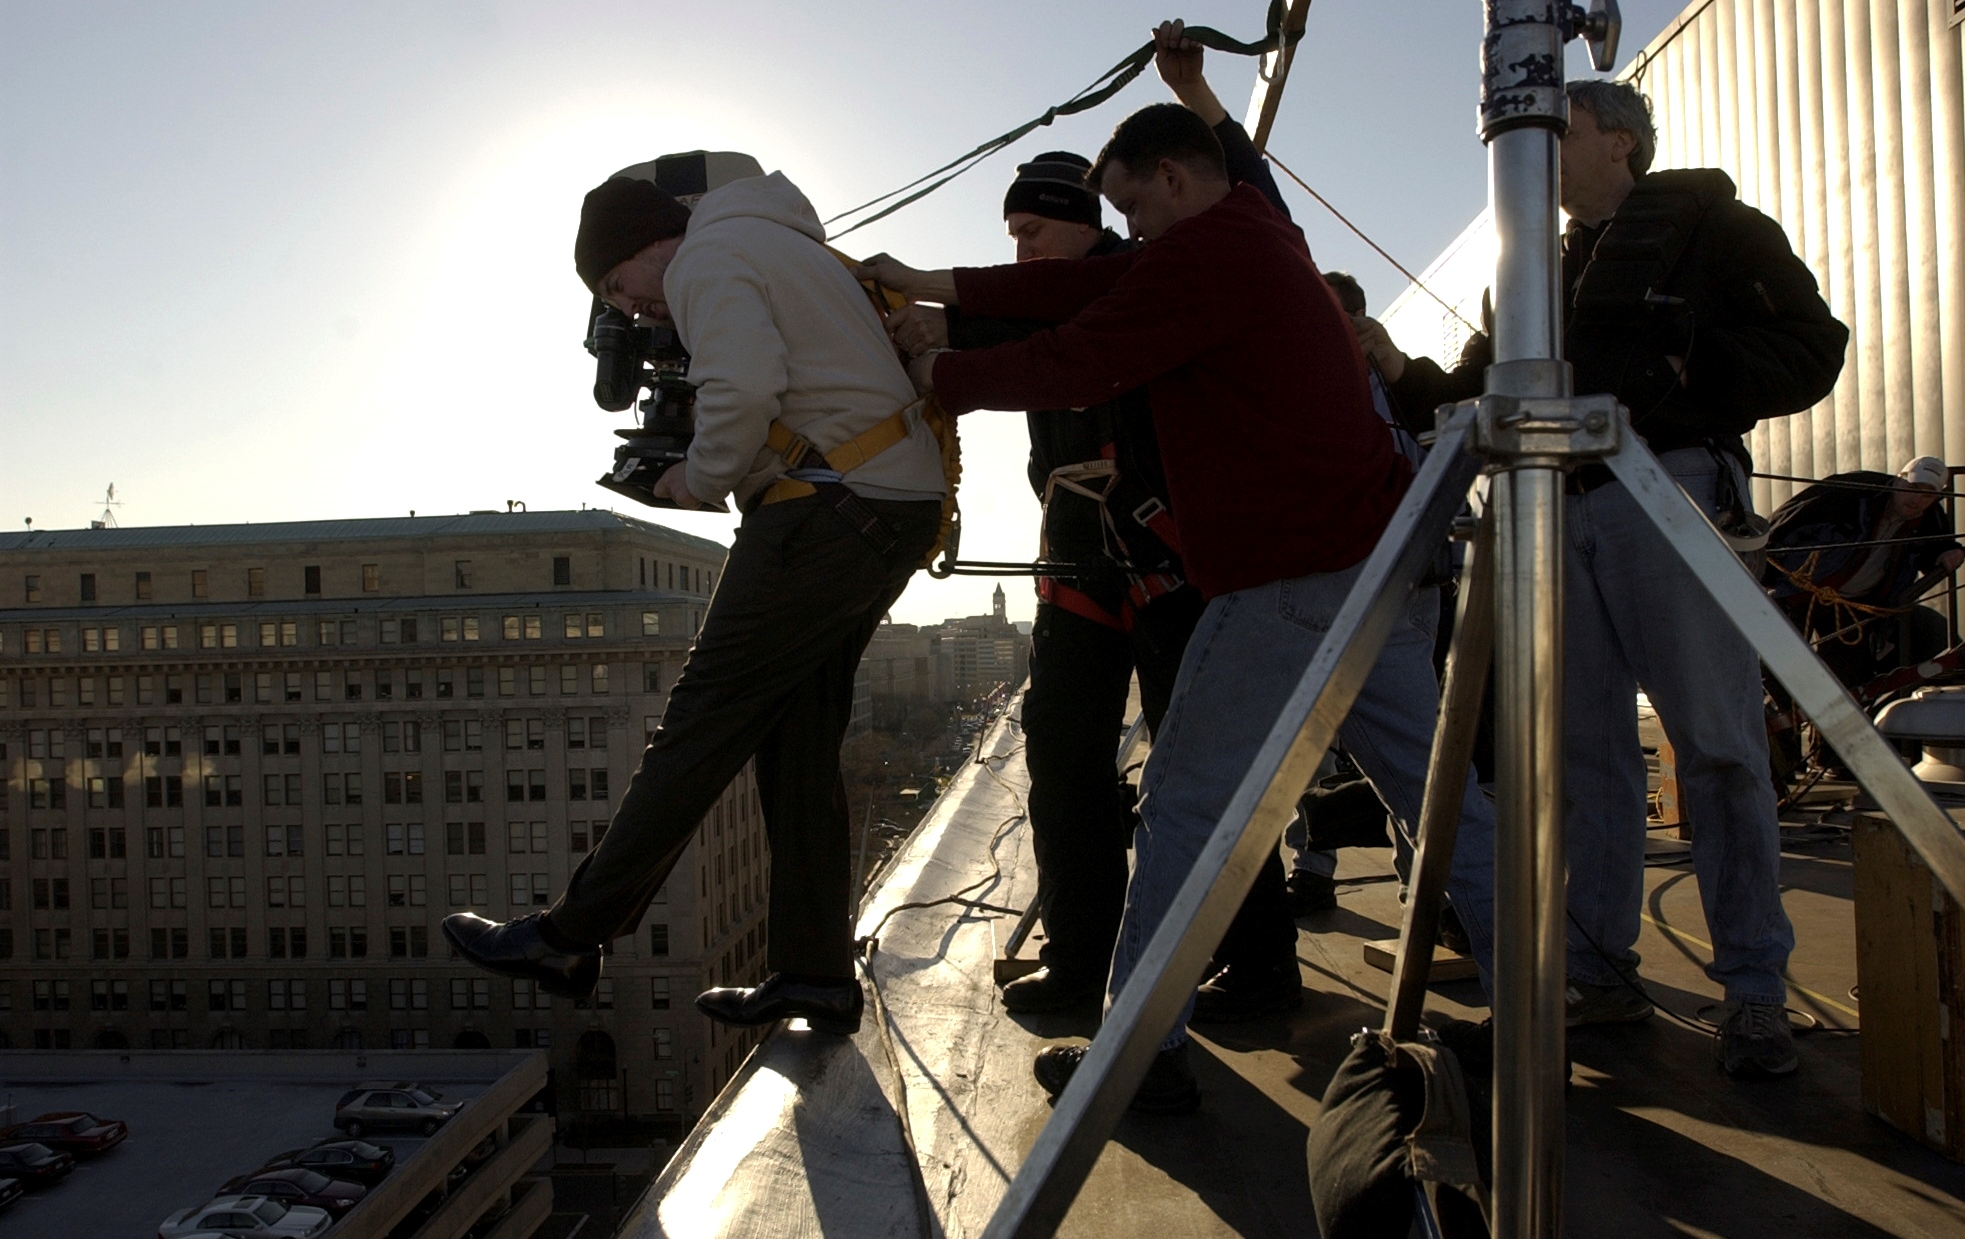 "On the location for the filming of ""Thank You for Smoking"", Jason Reitman, director, held by James Whitaker, director of photography, center, and Ted Ayd, gaffer, films a scene from atop the Hyatt Regency, where Reitman films the street and his foot by leaning over the side with a camera."